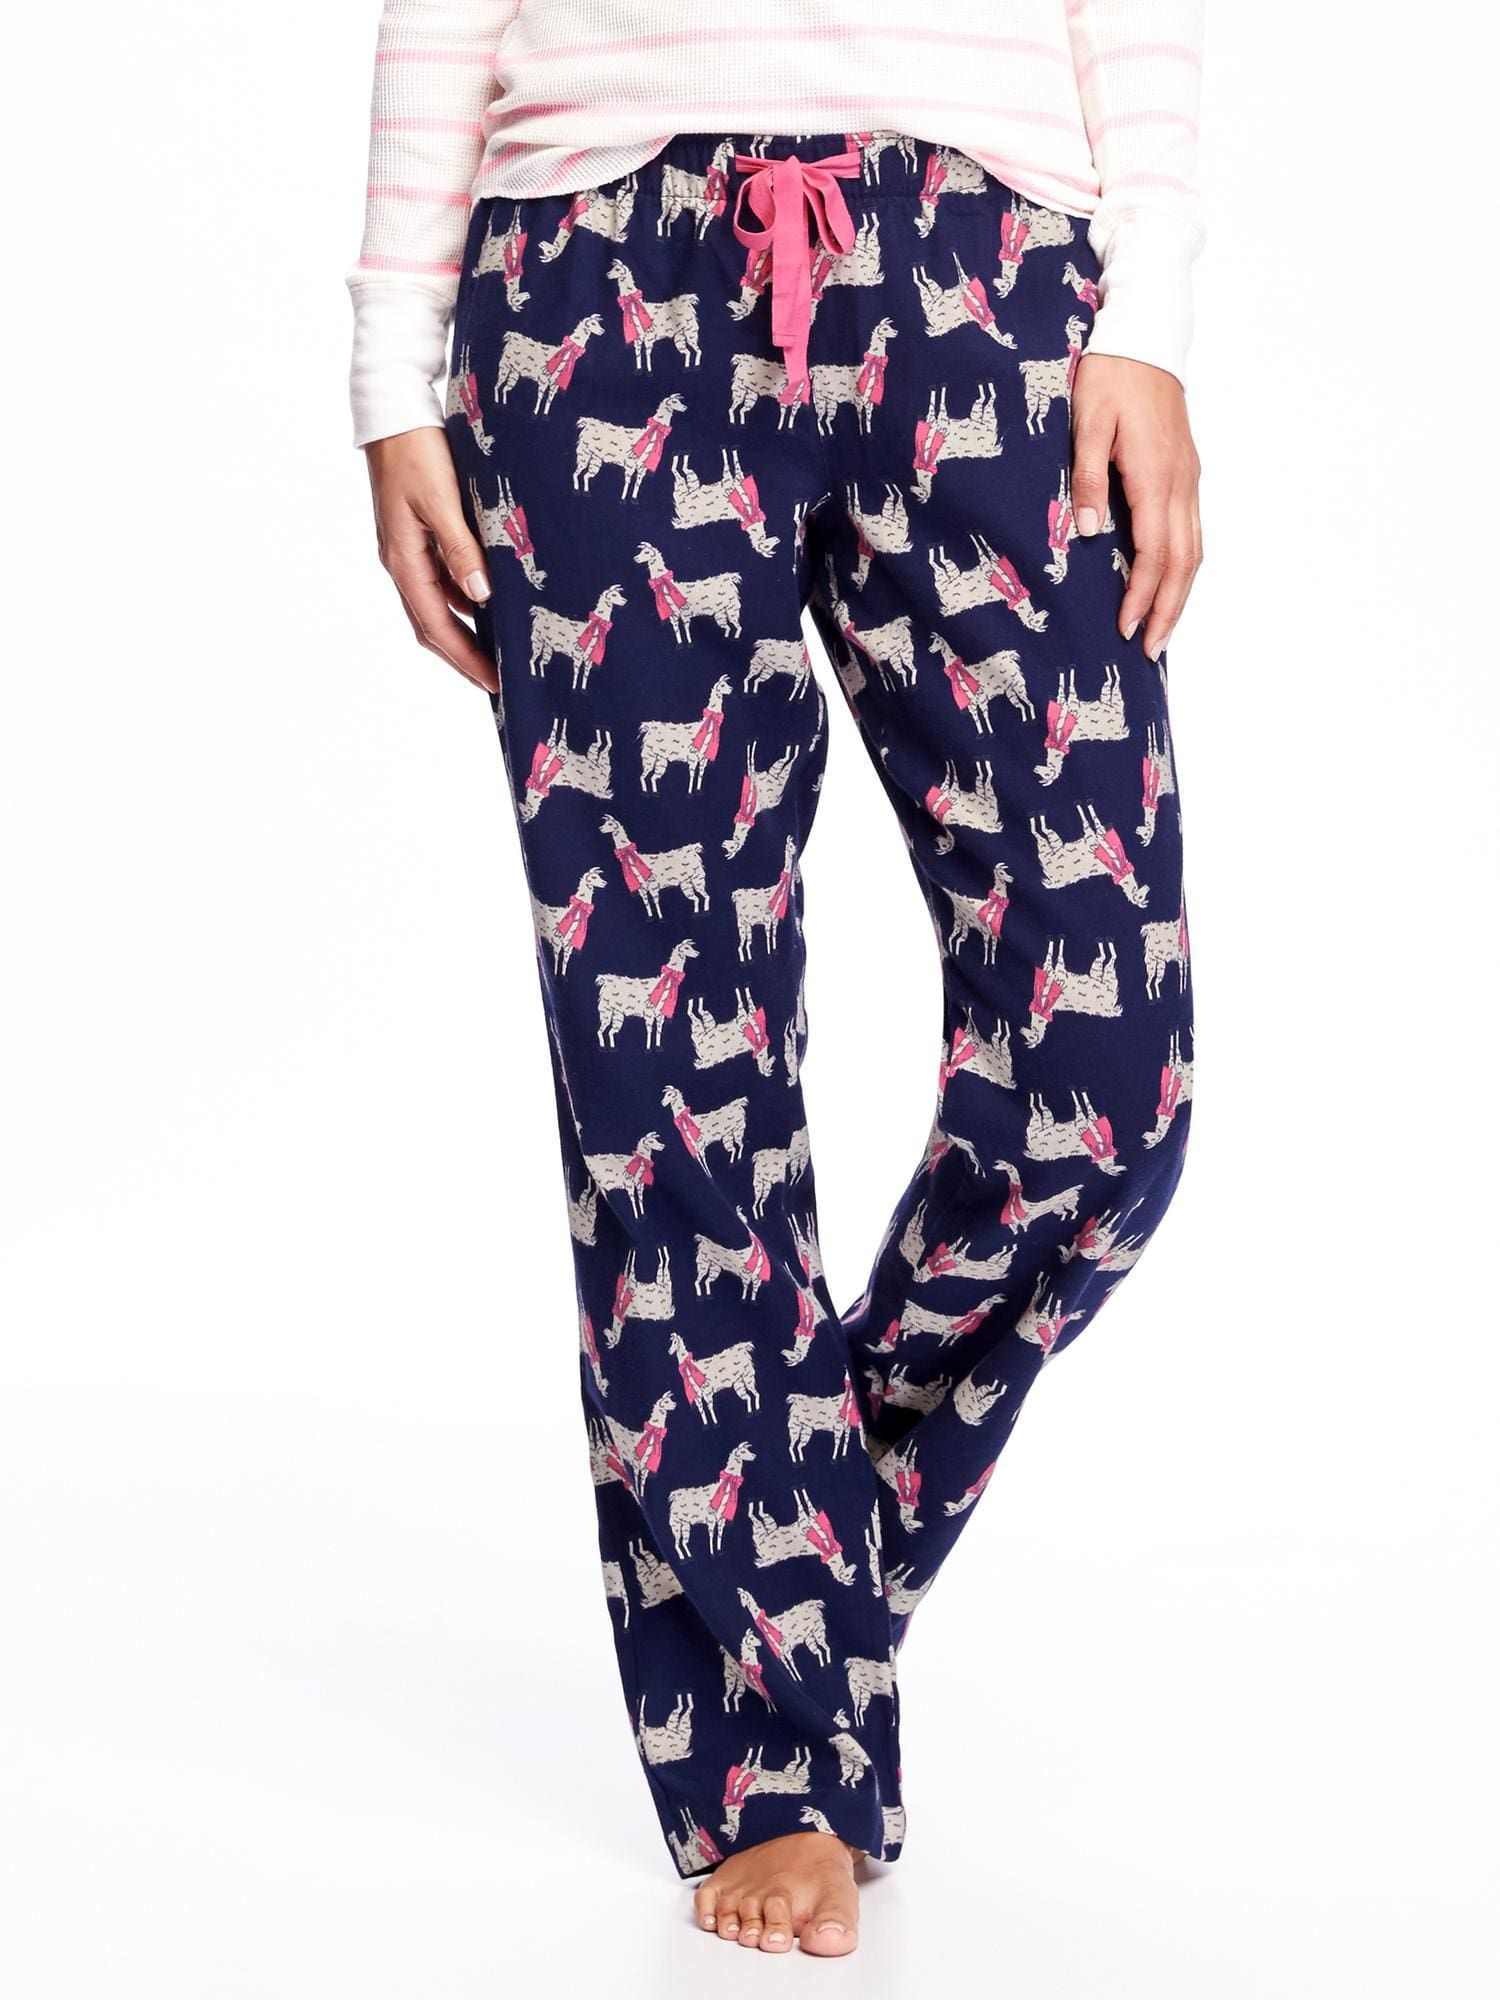 Pajama Pants With Llamas Wearing Scarves Yes